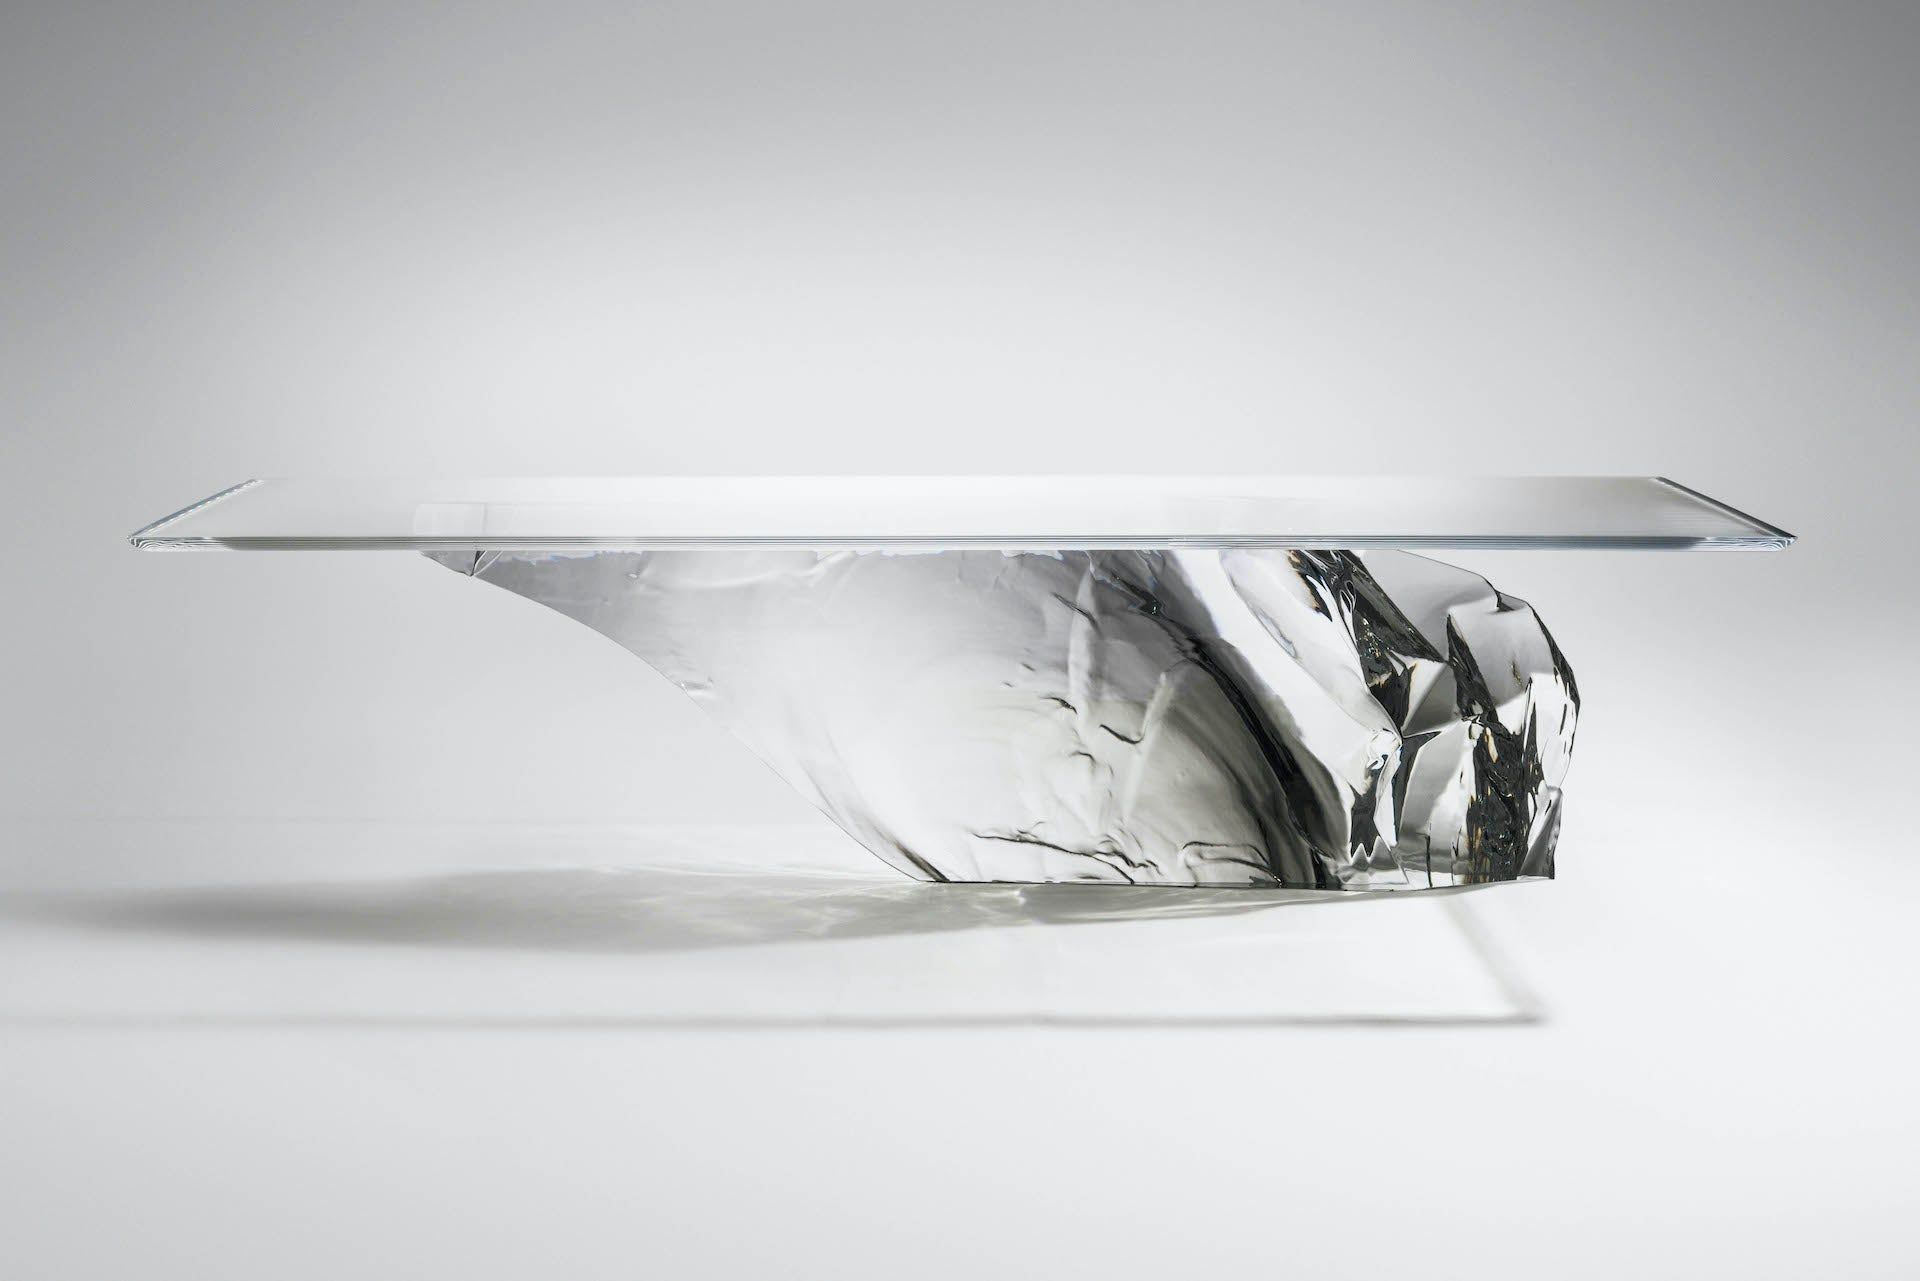 Dining Table Antarctica by Fredrikson Stallard for David Gill Gallery, 2017; Edition of 12 + 2P.  Photo © David Gill Gallery